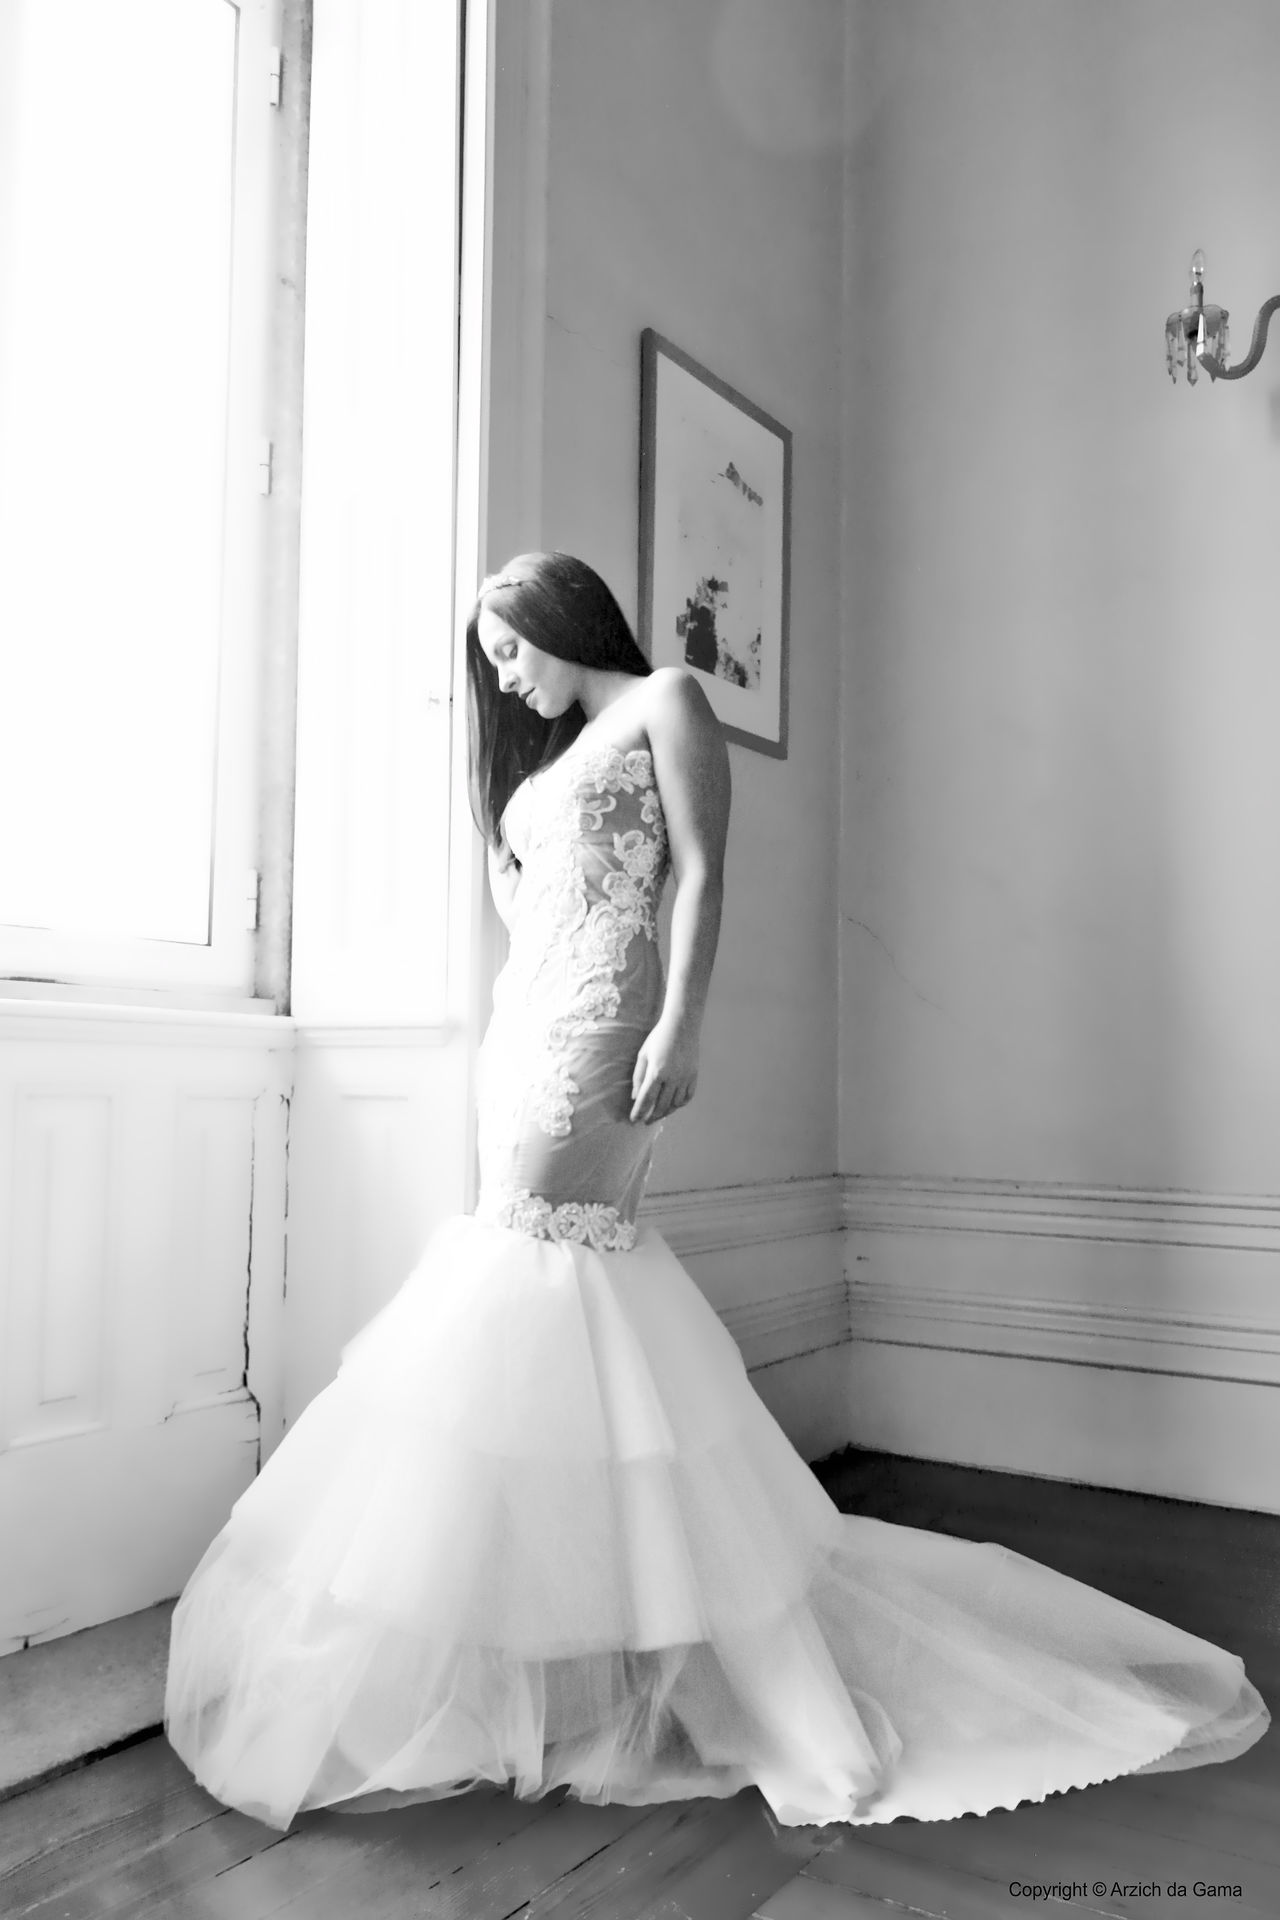 I won't add model and place release! deal with it! Adult Adults Only Ballet Ballet Dancer Bride Bride Dress Day Evening Gown Grace Indoors  Light And Reflection One Person People Standing Wedding Dress Window Young Adult